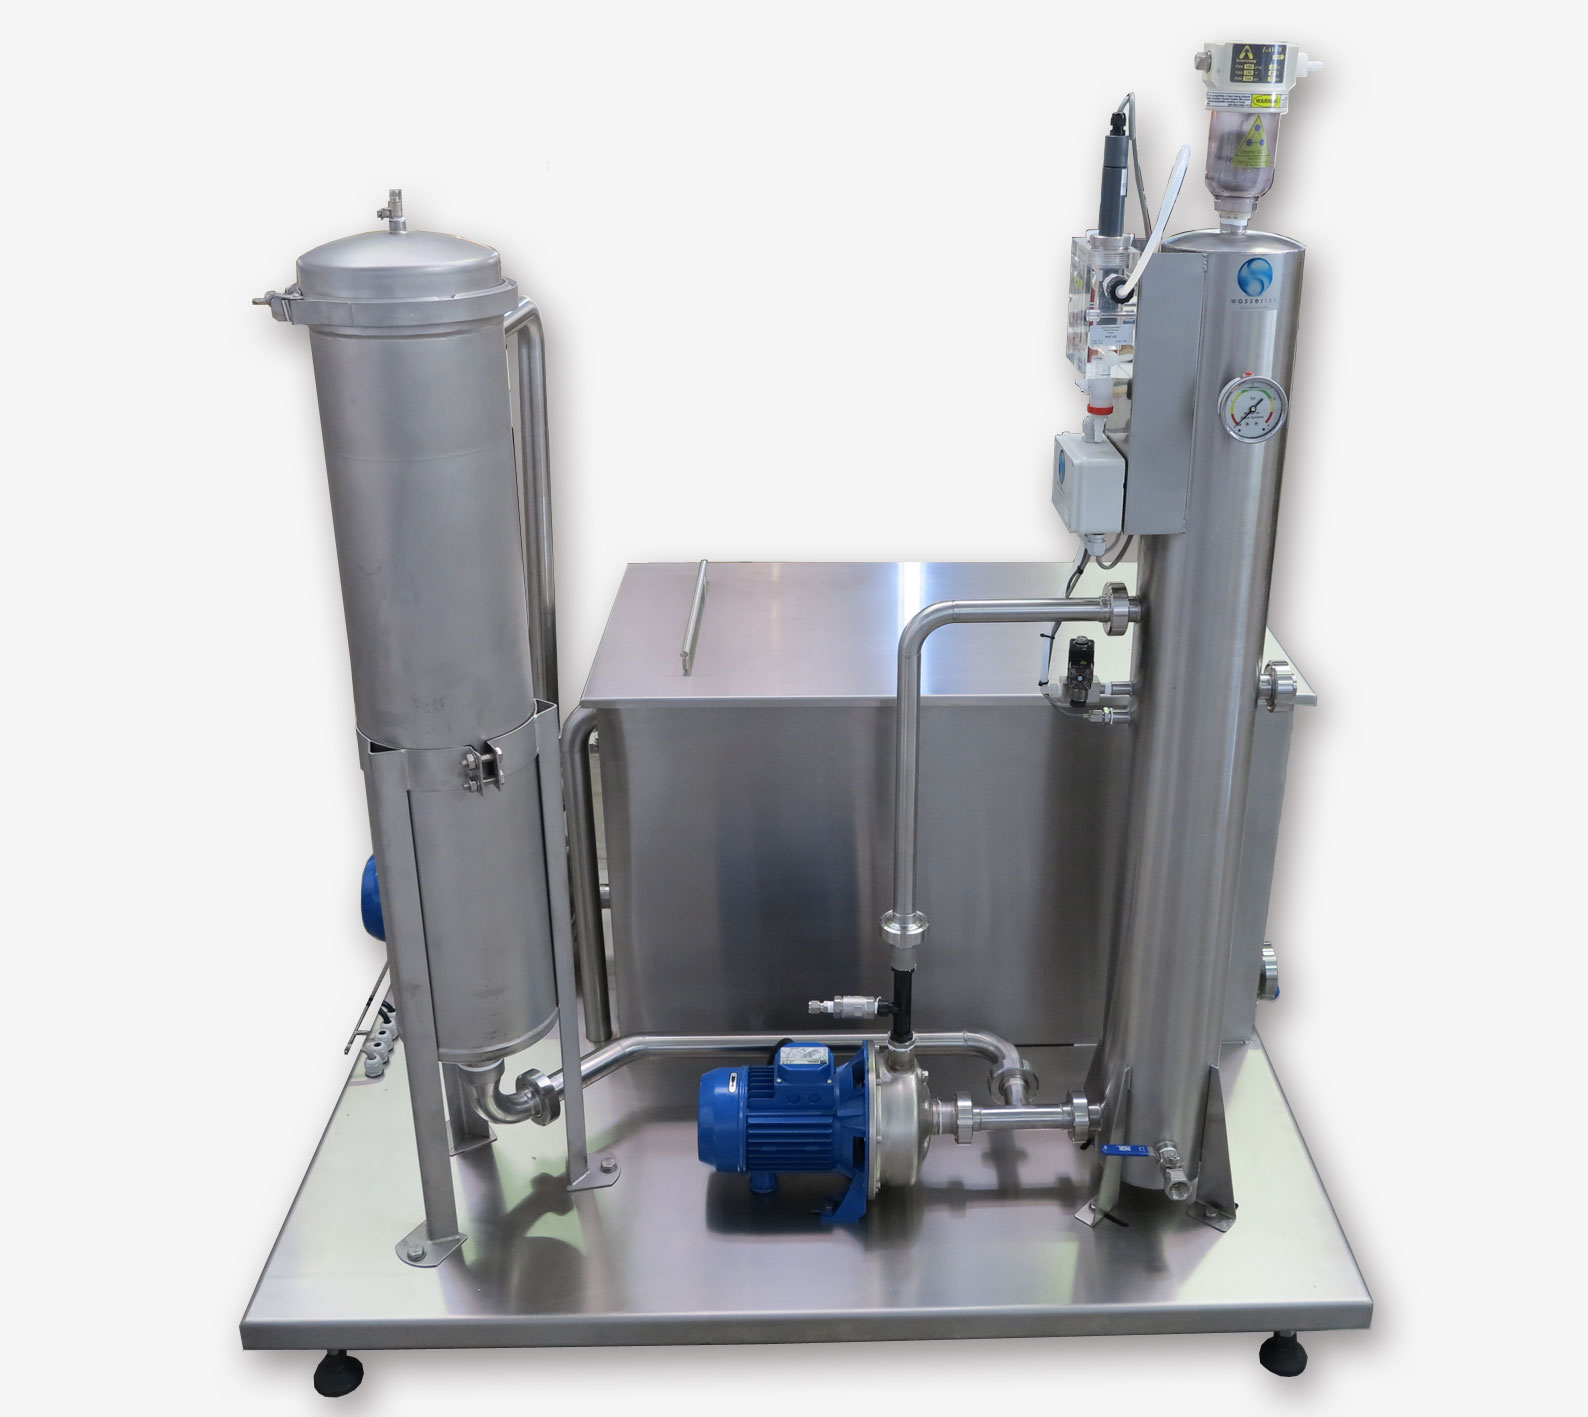 Water recycling. Wassertec. Bright Blue ozone system. Bottle rinsing. Bright Blue 20G Ozone System Bottle rinsing systems. bottle rinsing , bottle rinsers, ozone bottle rinsing